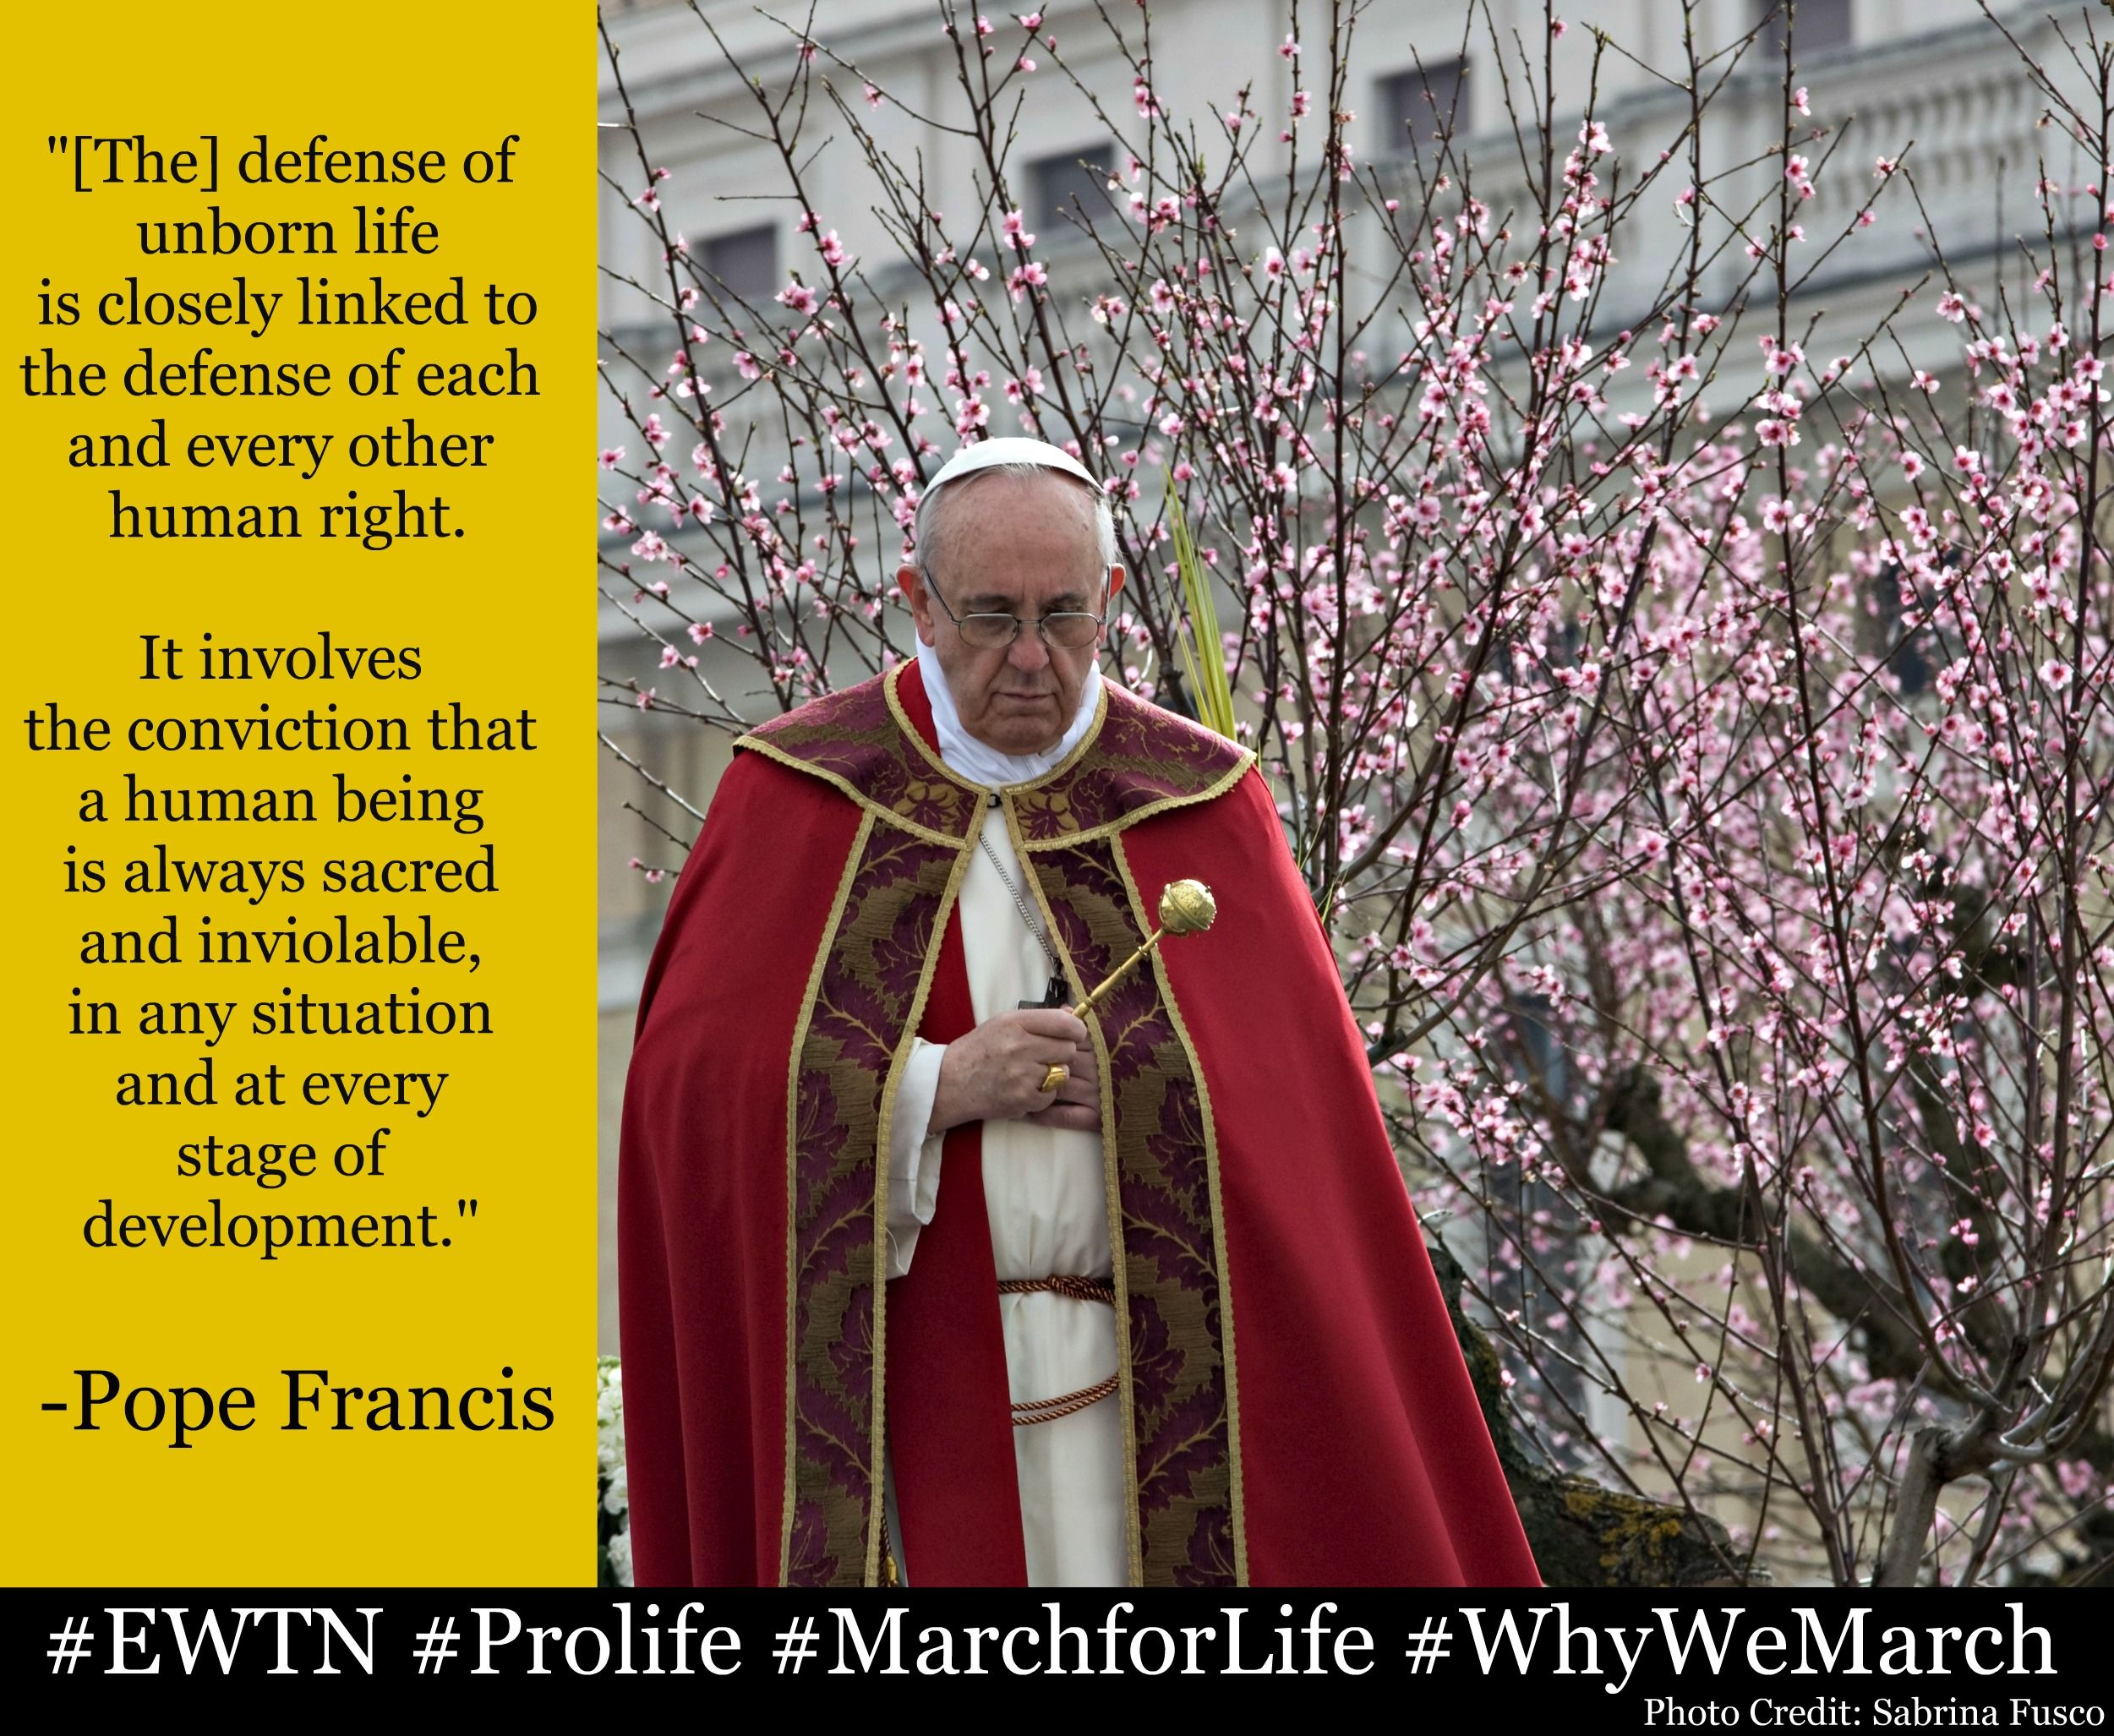 Share Pope Francis' answer to #WhyWeMarch and tell us your own! #EWTN's exclusive LIVE coverage of the #MarchforLife begins at 9 a.m. ET, Wednesday, Jan. 22!